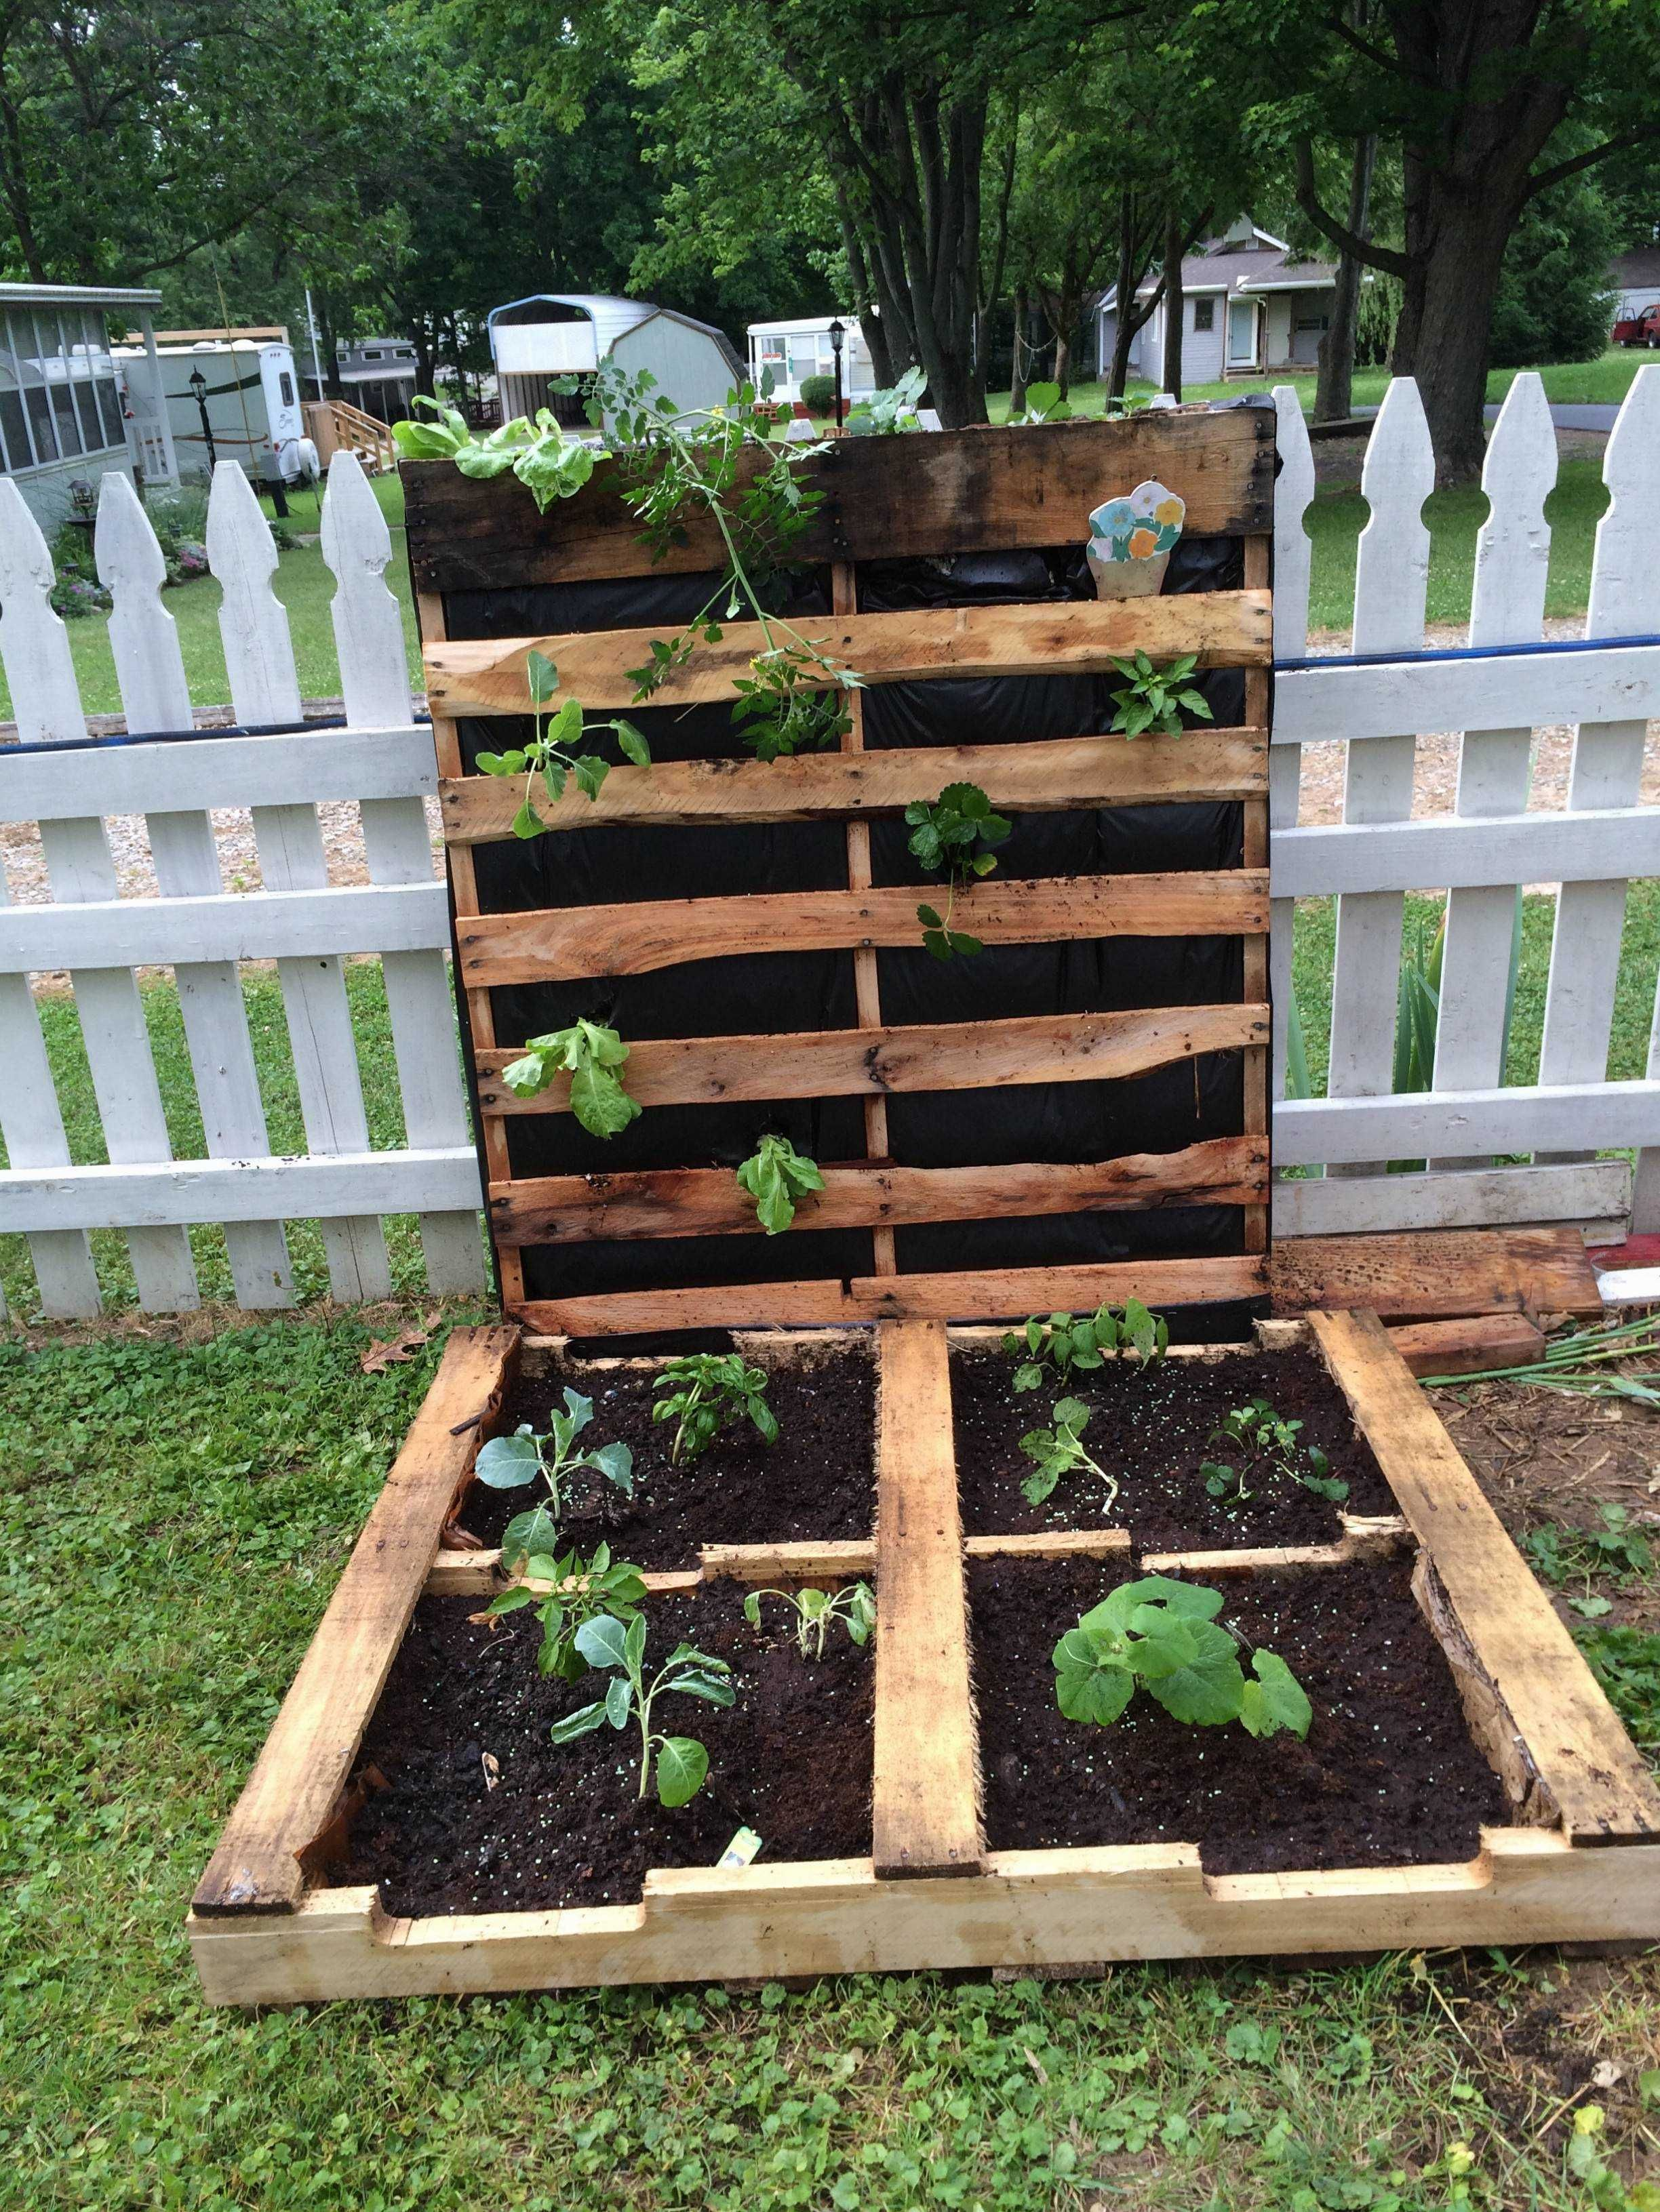 How To Make Your First Pallet Garden 1001 Pallets Pallet Projects Garden Pallets Garden Pallet Garden